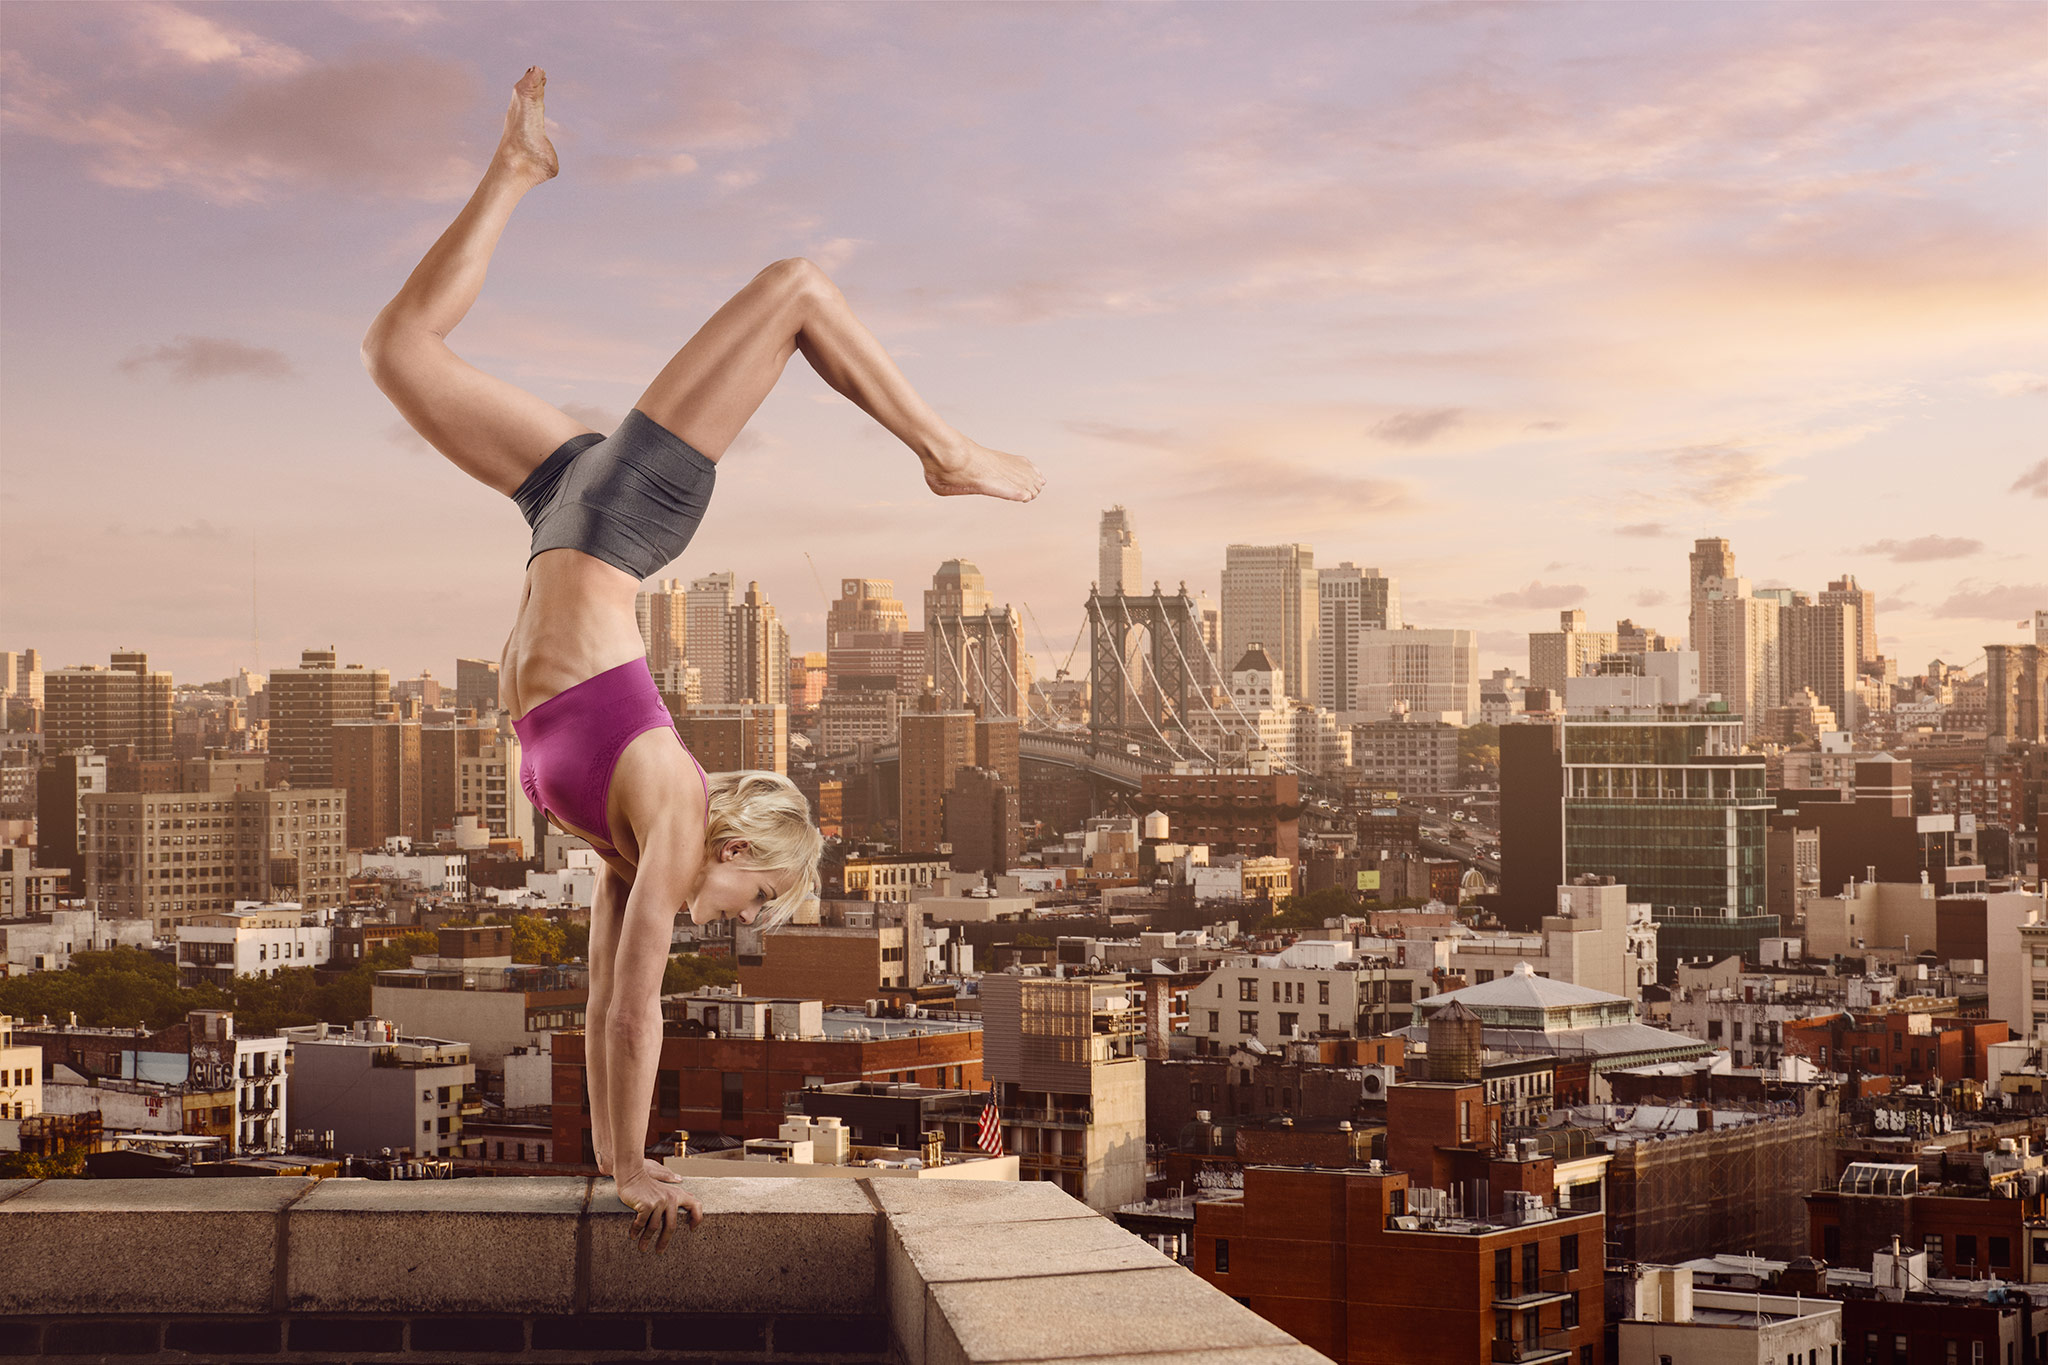 Model Balances on the Top Ledge of Building | Zach Ancell Photography